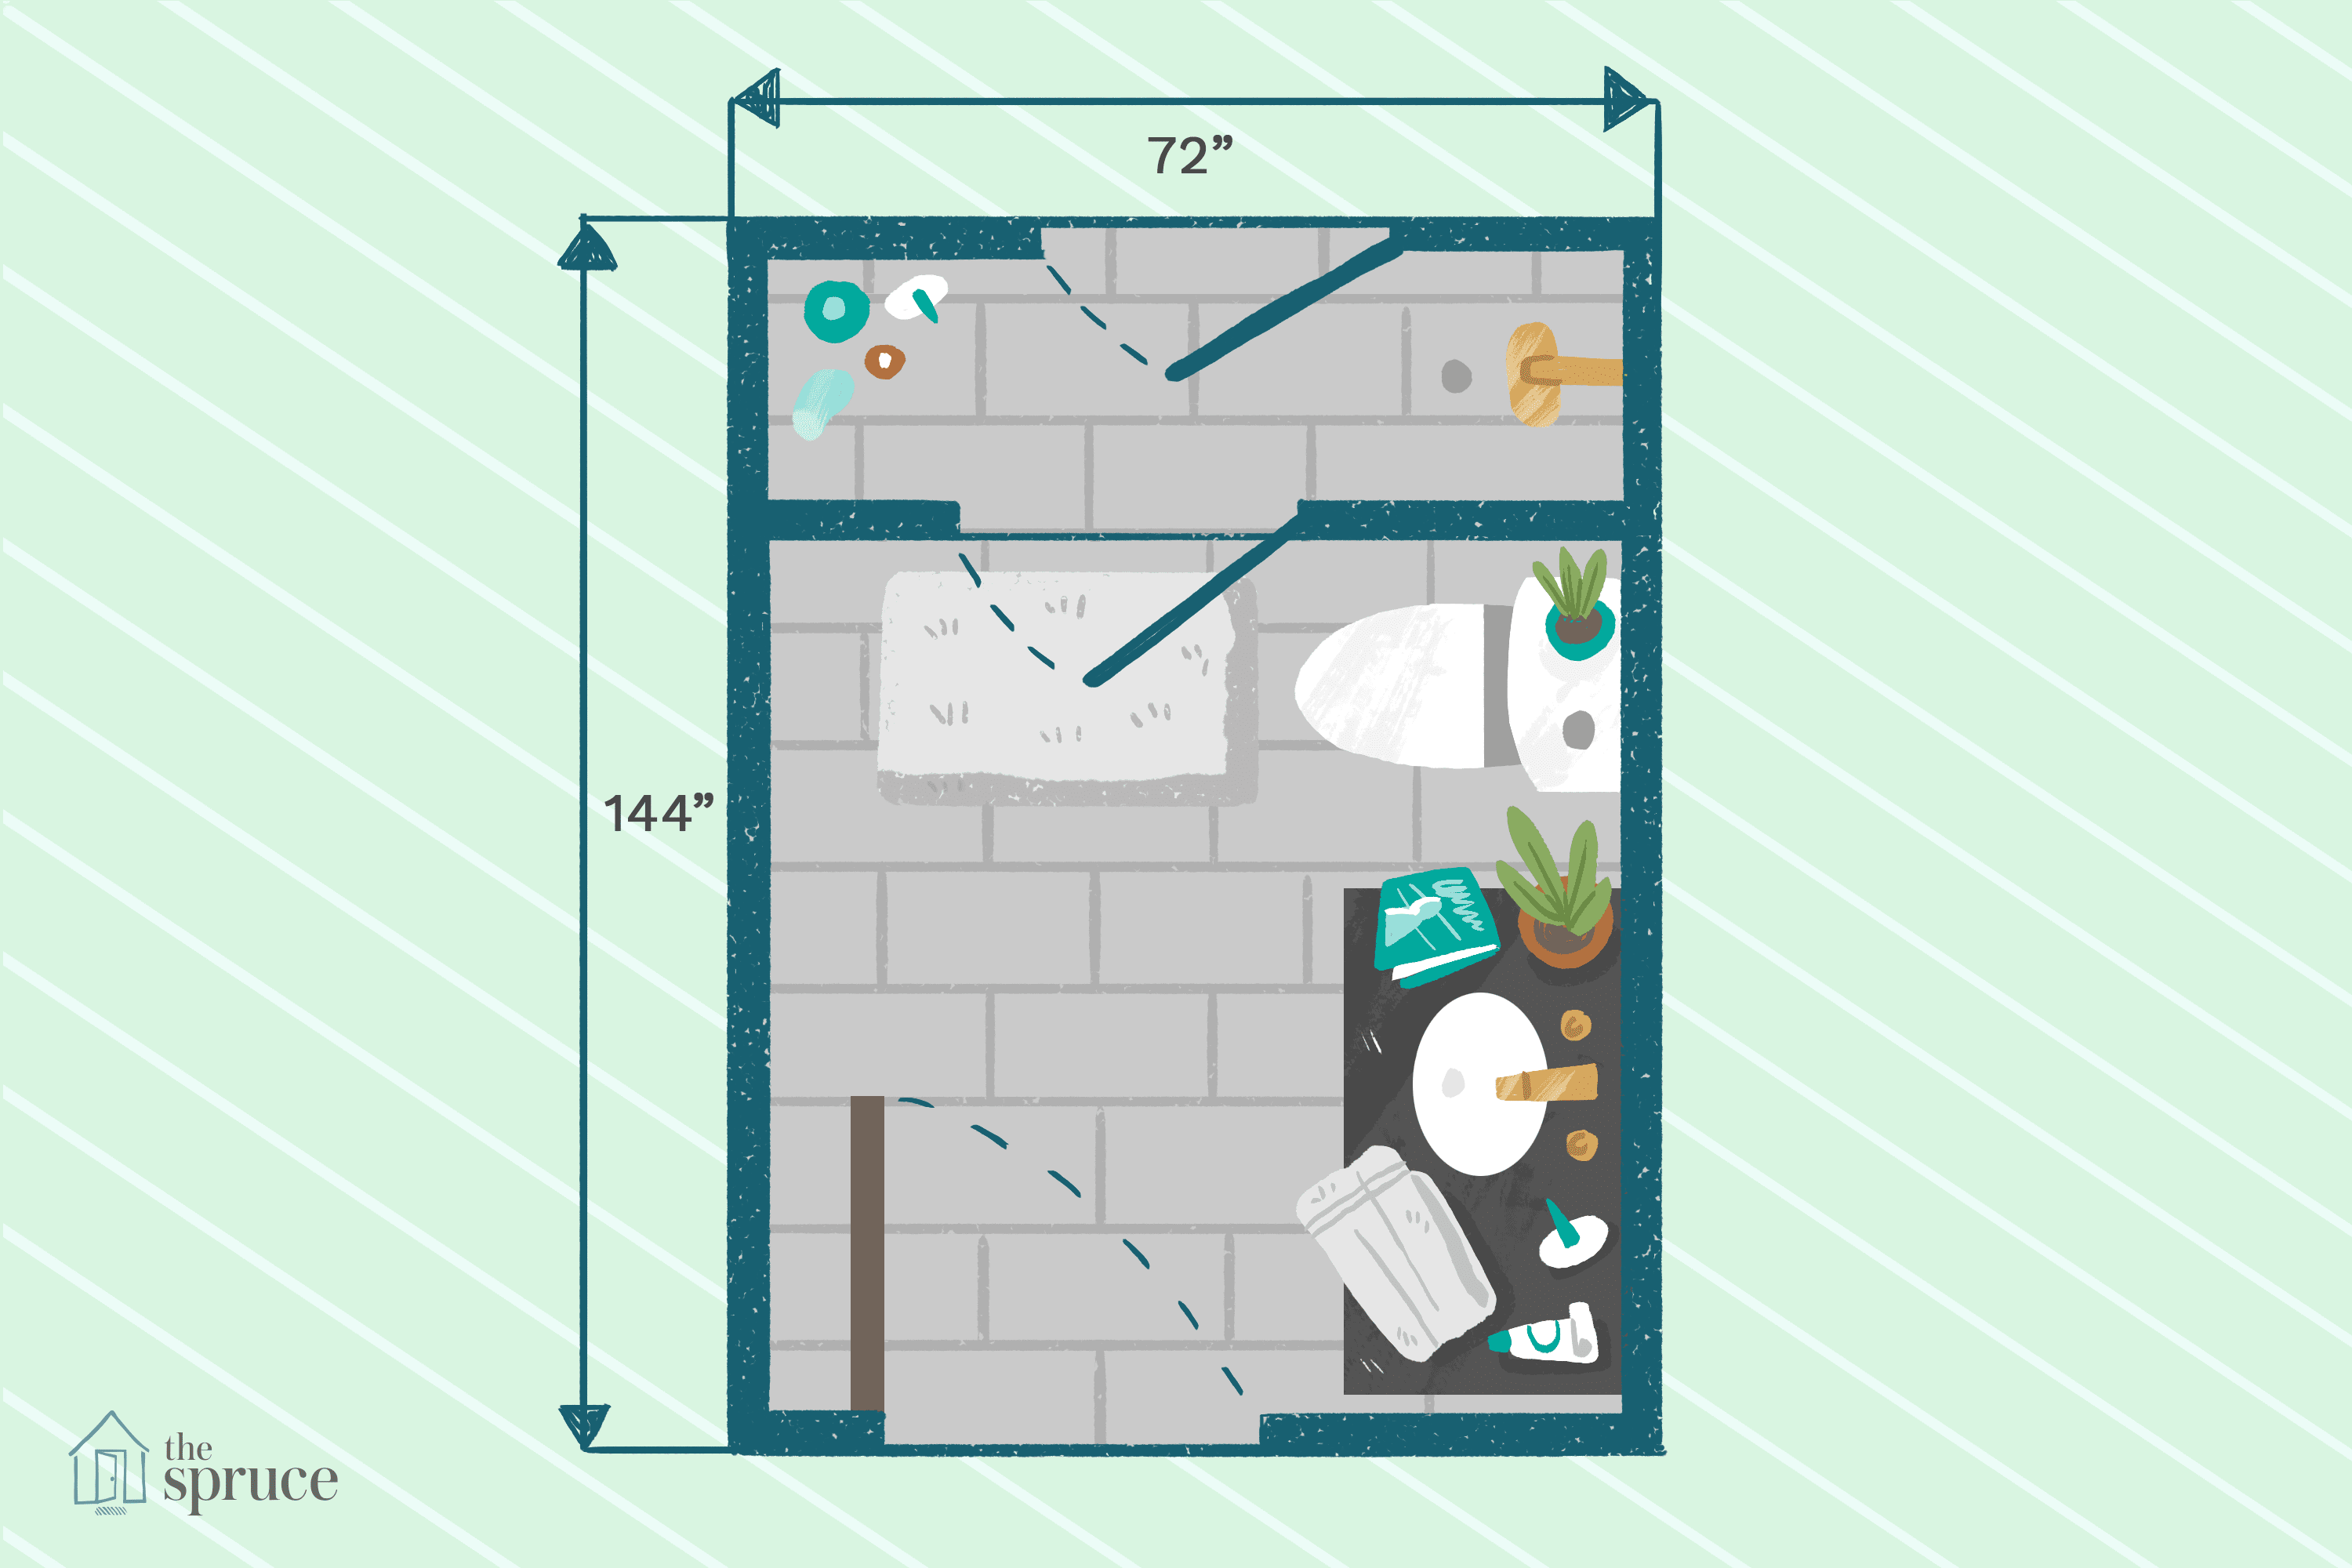 8x8 bathroom layout with shower